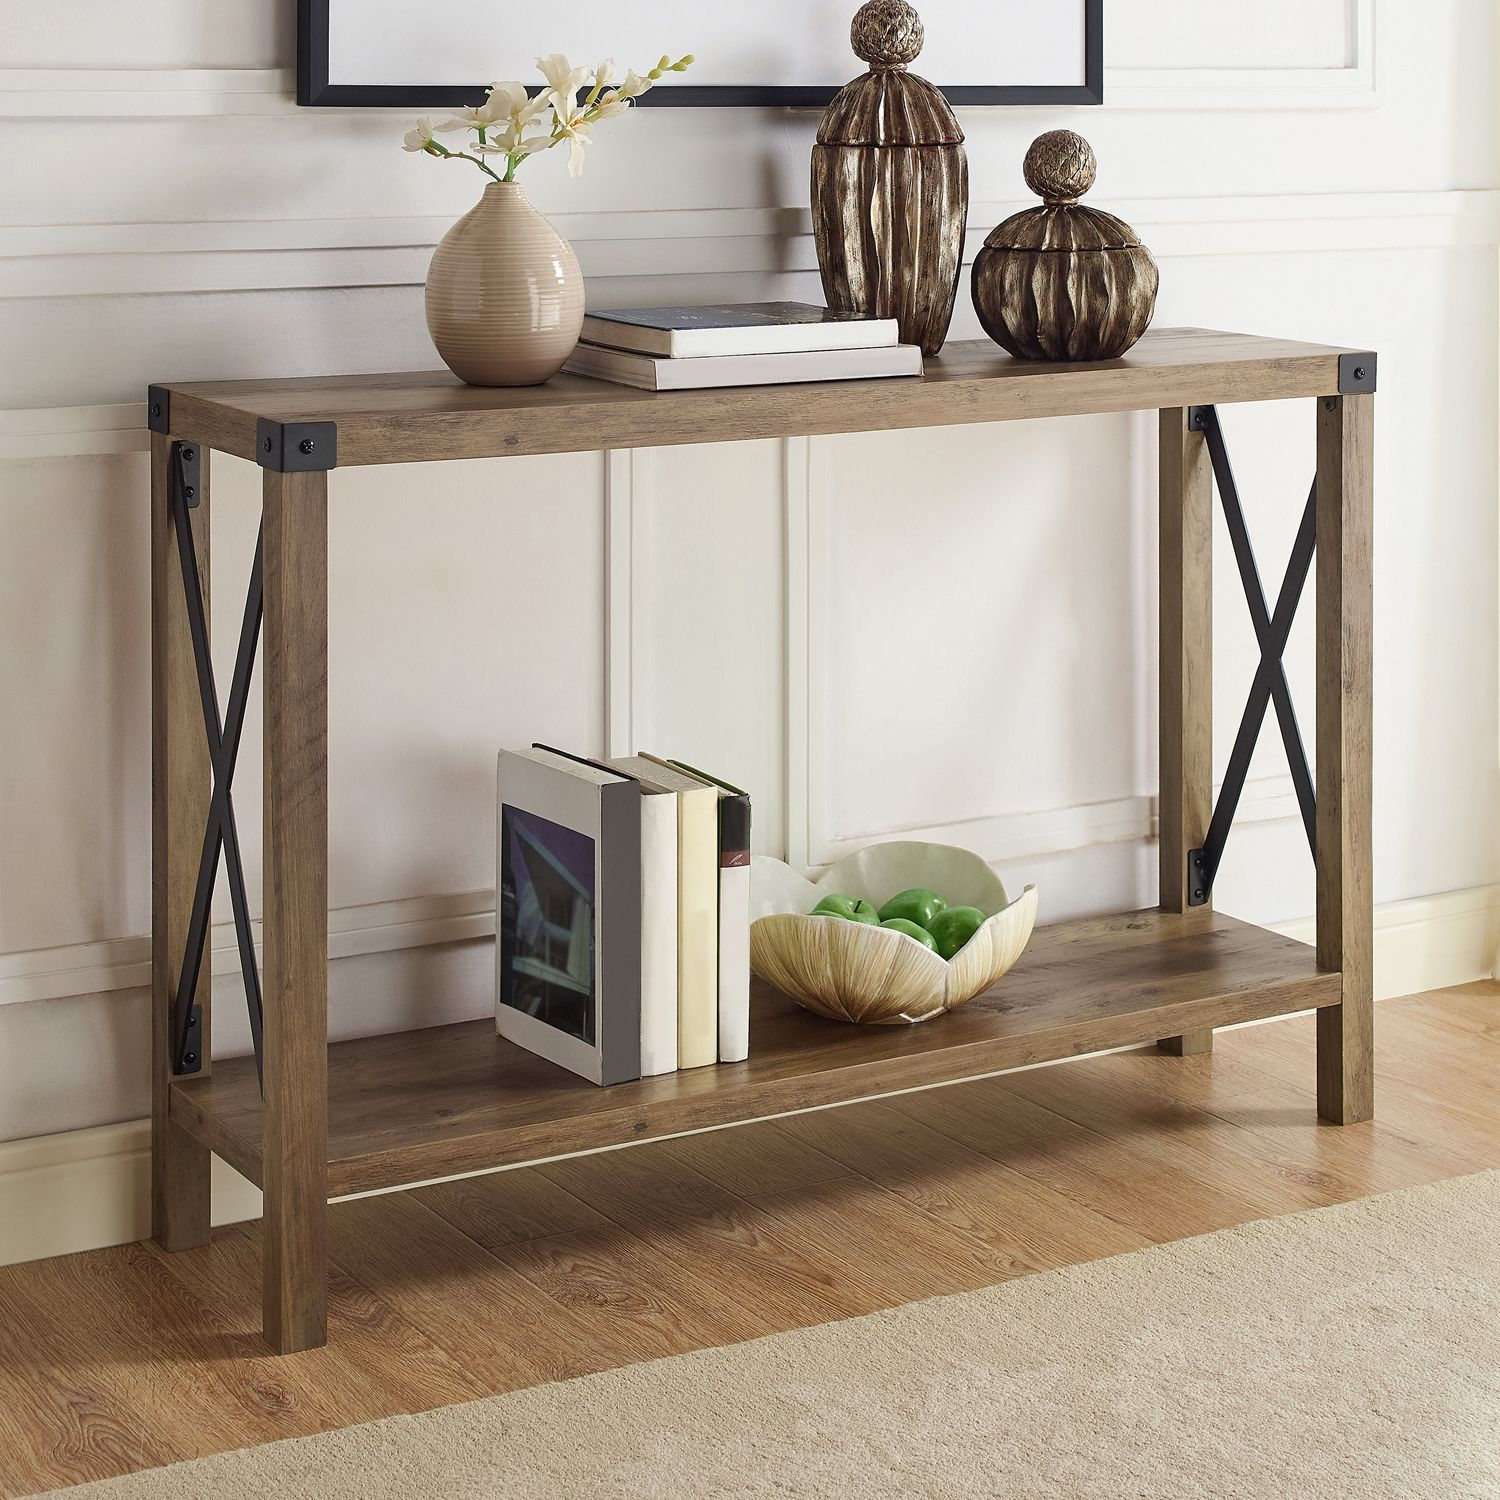 Marvelous Modern Farmhouse Rustic Oak Console Table In 2019 Rustic Ncnpc Chair Design For Home Ncnpcorg